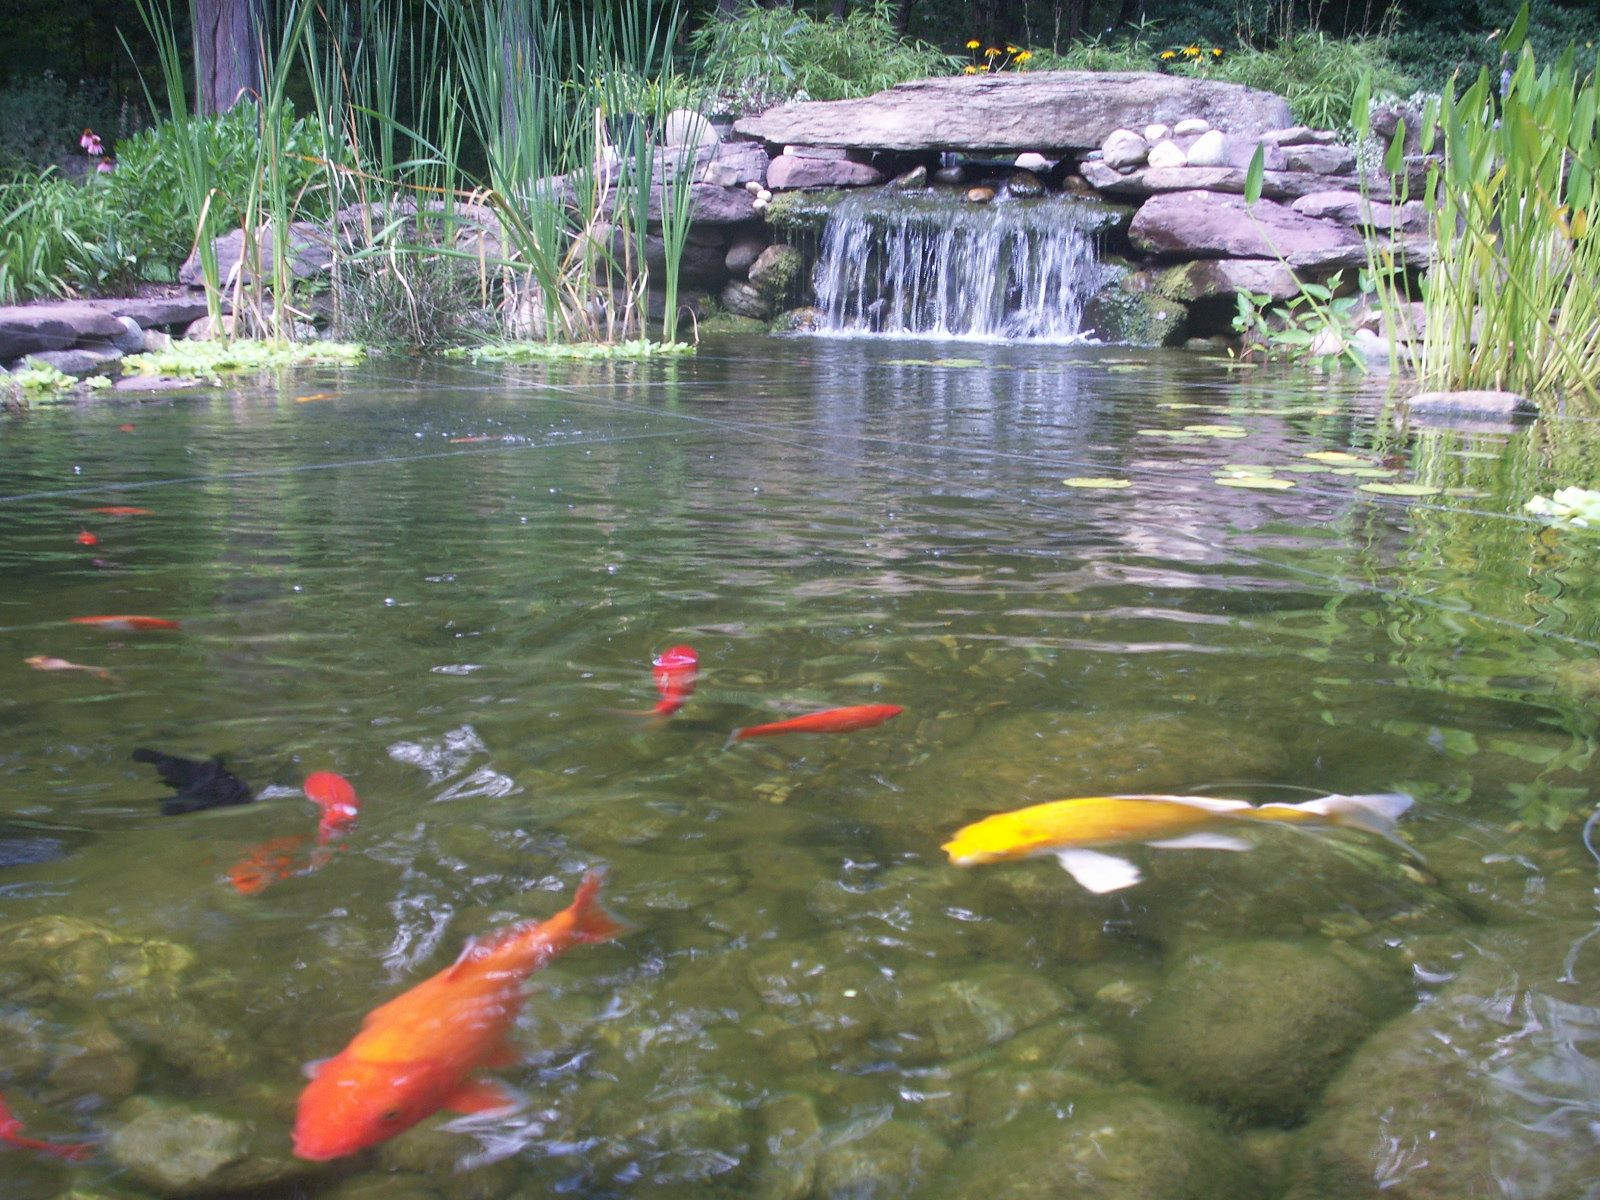 Beautiful fishies gardening water gardens my dream for Backyard fish pond designs